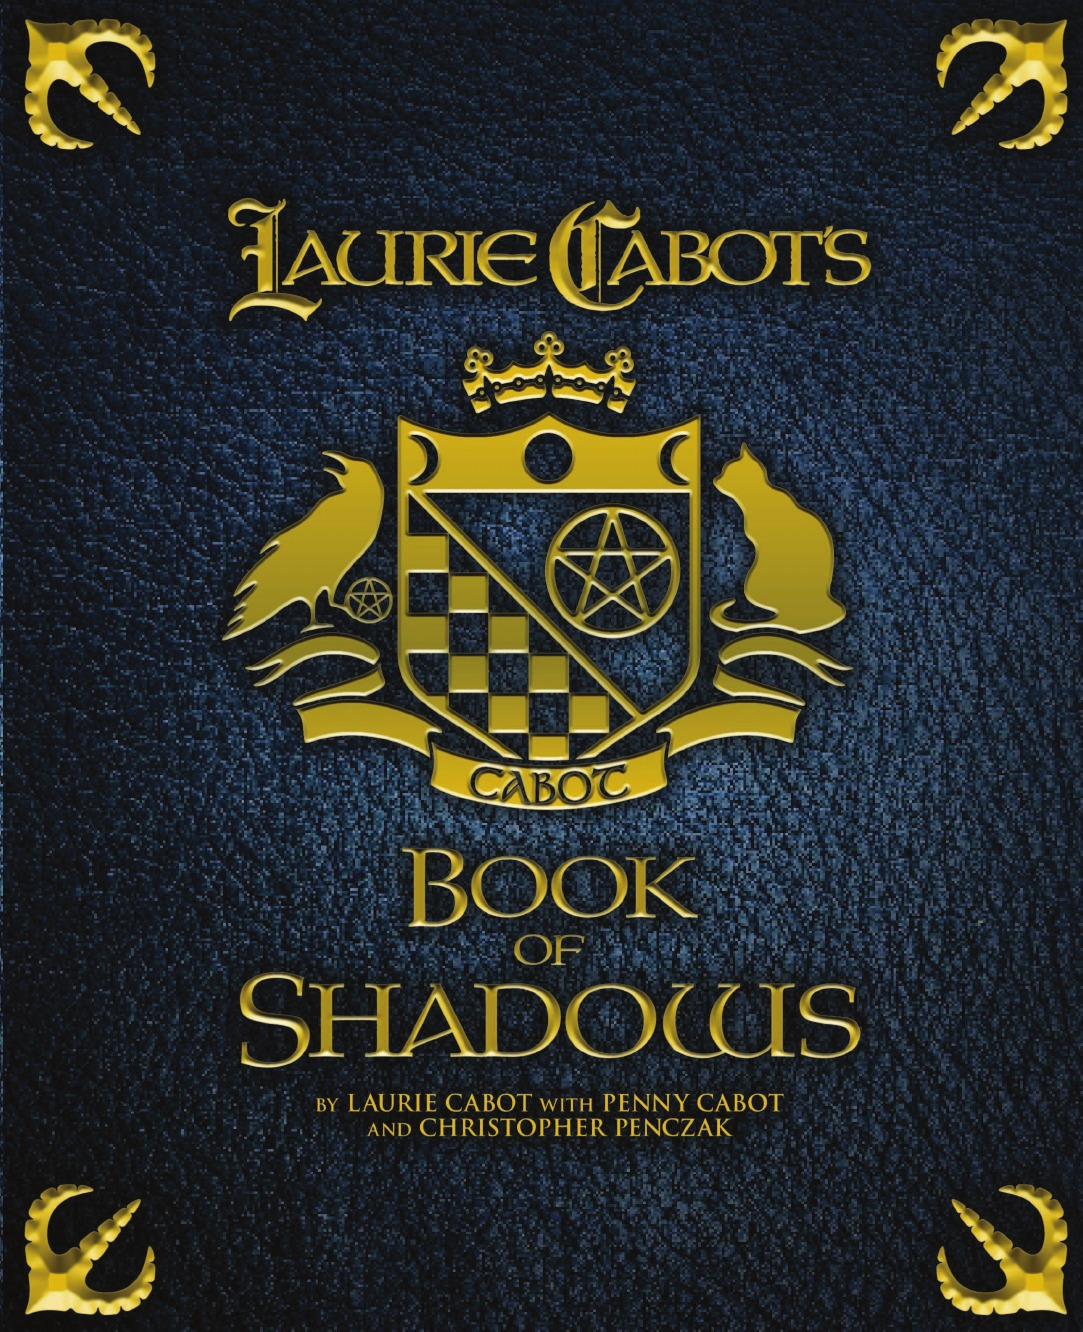 лучшая цена Laurie Cabot, Penny Cabot, Christopher Penczak Laurie Cabot.s Book of Shadows